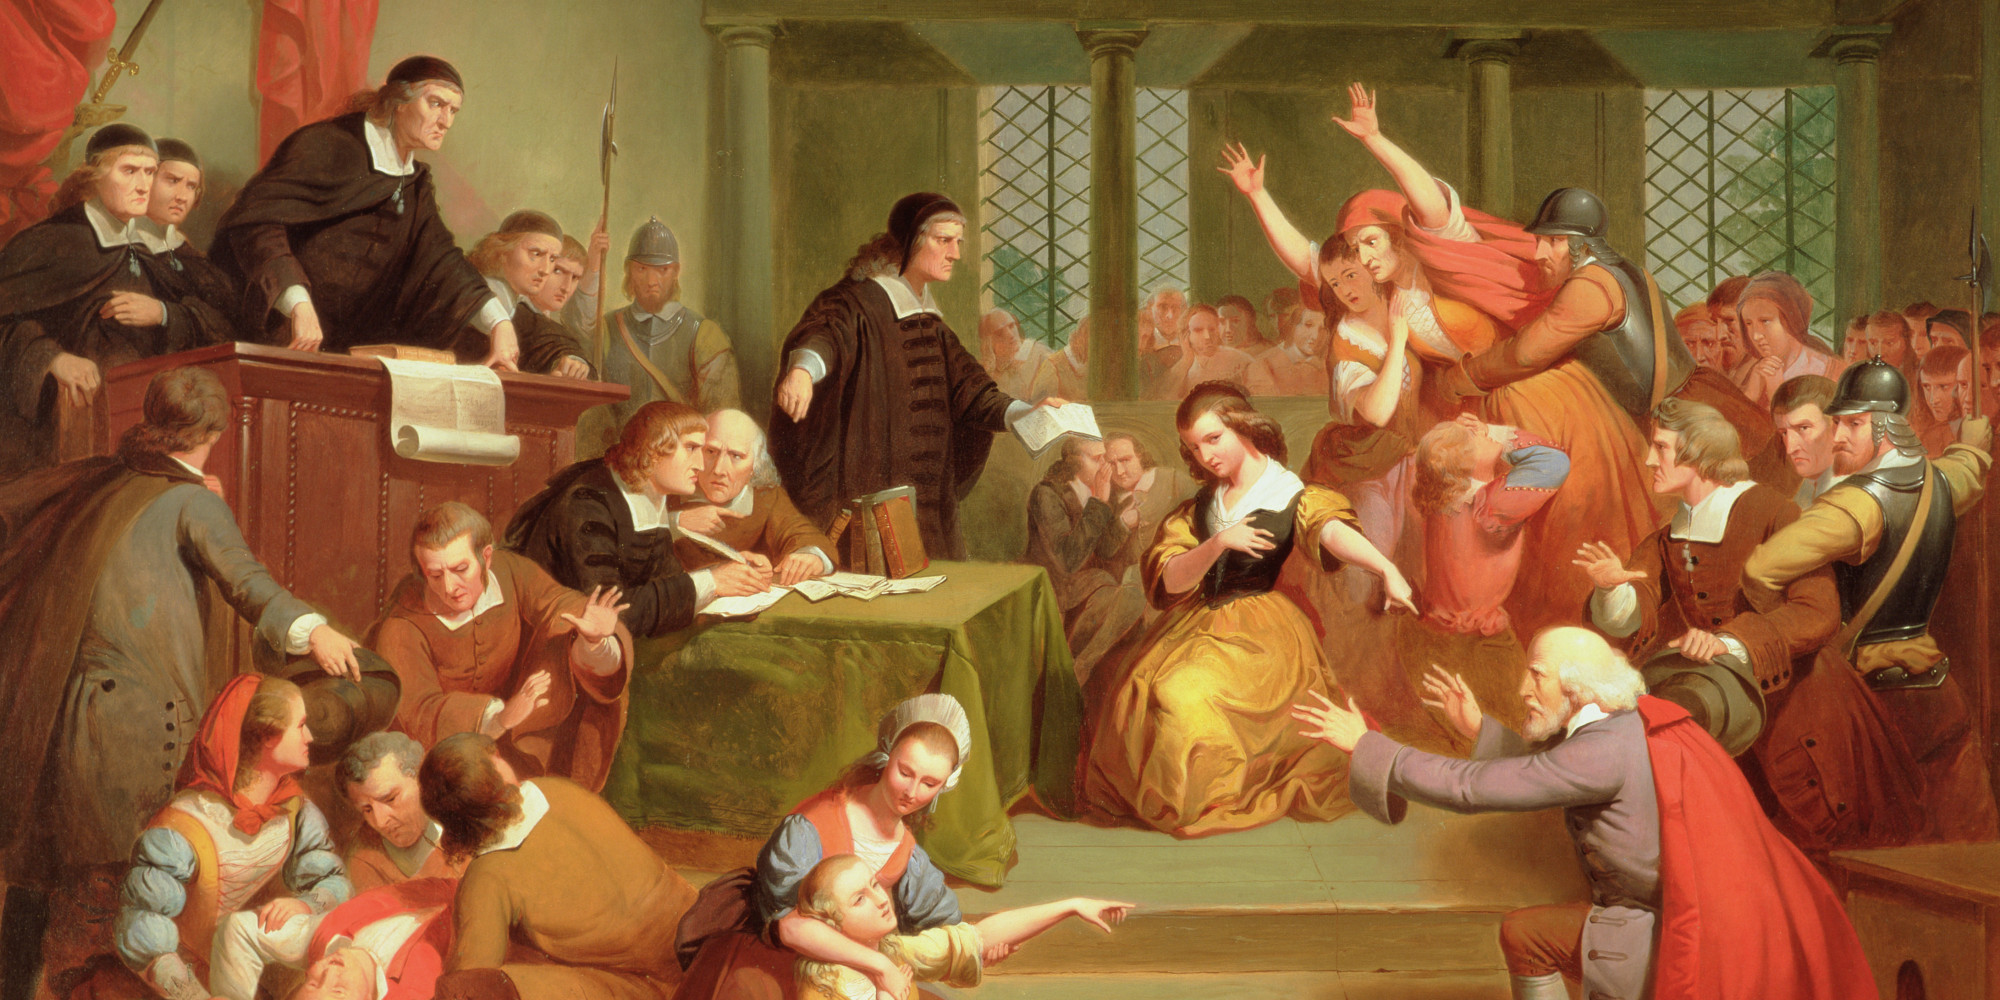 hysteria and fear of the salem The salem witch trials page contains information and court transcripts dealing with the events and persons of whether it was fear of god's wrath or hysteria.